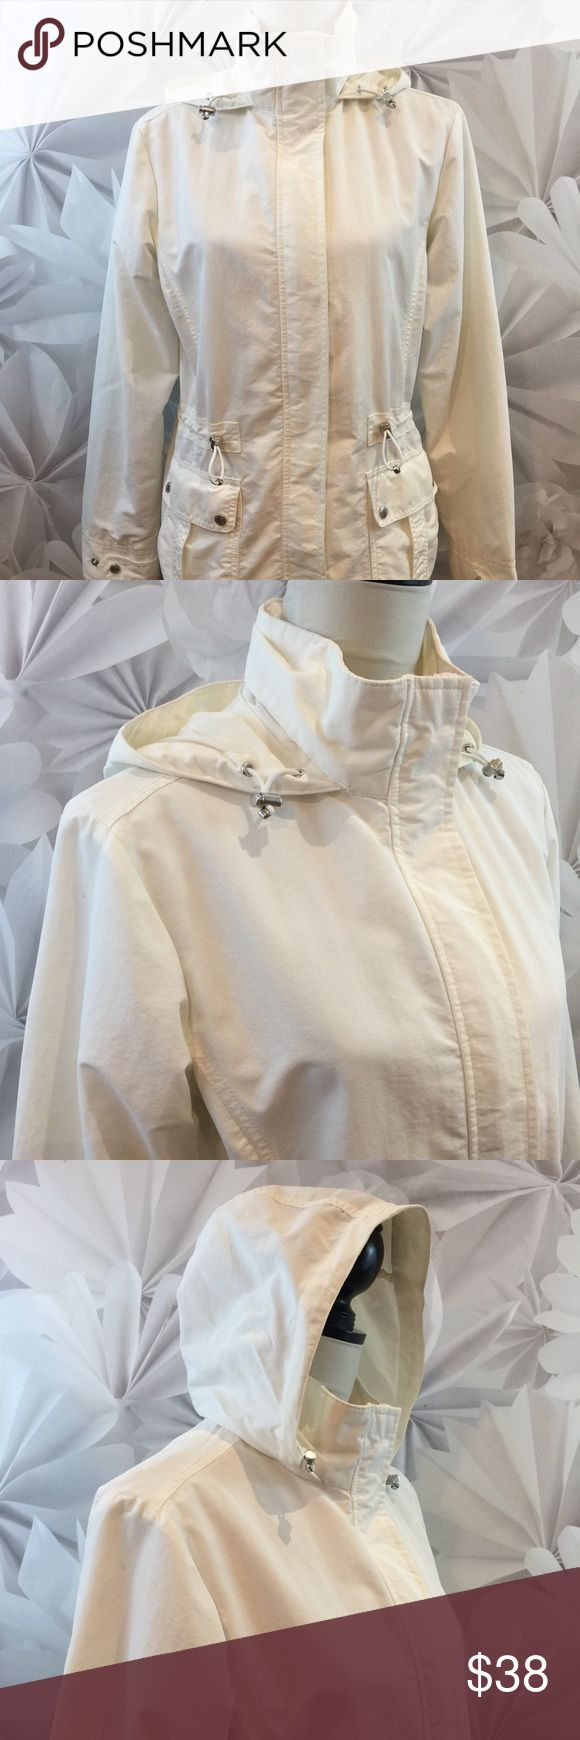 """Lands' End Women's Rain Coat Hoodie Full Zip Lands End Women's Rain Coat Pack Away Hooded Spring Full Zip Sz S Euc Lined  Bust: 41"""" Length: 26 1/2"""" Sleeves: 24""""  We would be thrilled to combine shipping!  This garment is in excellent used condition. There are no stains, spots, pills, or signs of wear. This item comes from a smoke free pet free environment. Please follow us on our store and never miss another sale! Lands' End Jackets & Coats"""